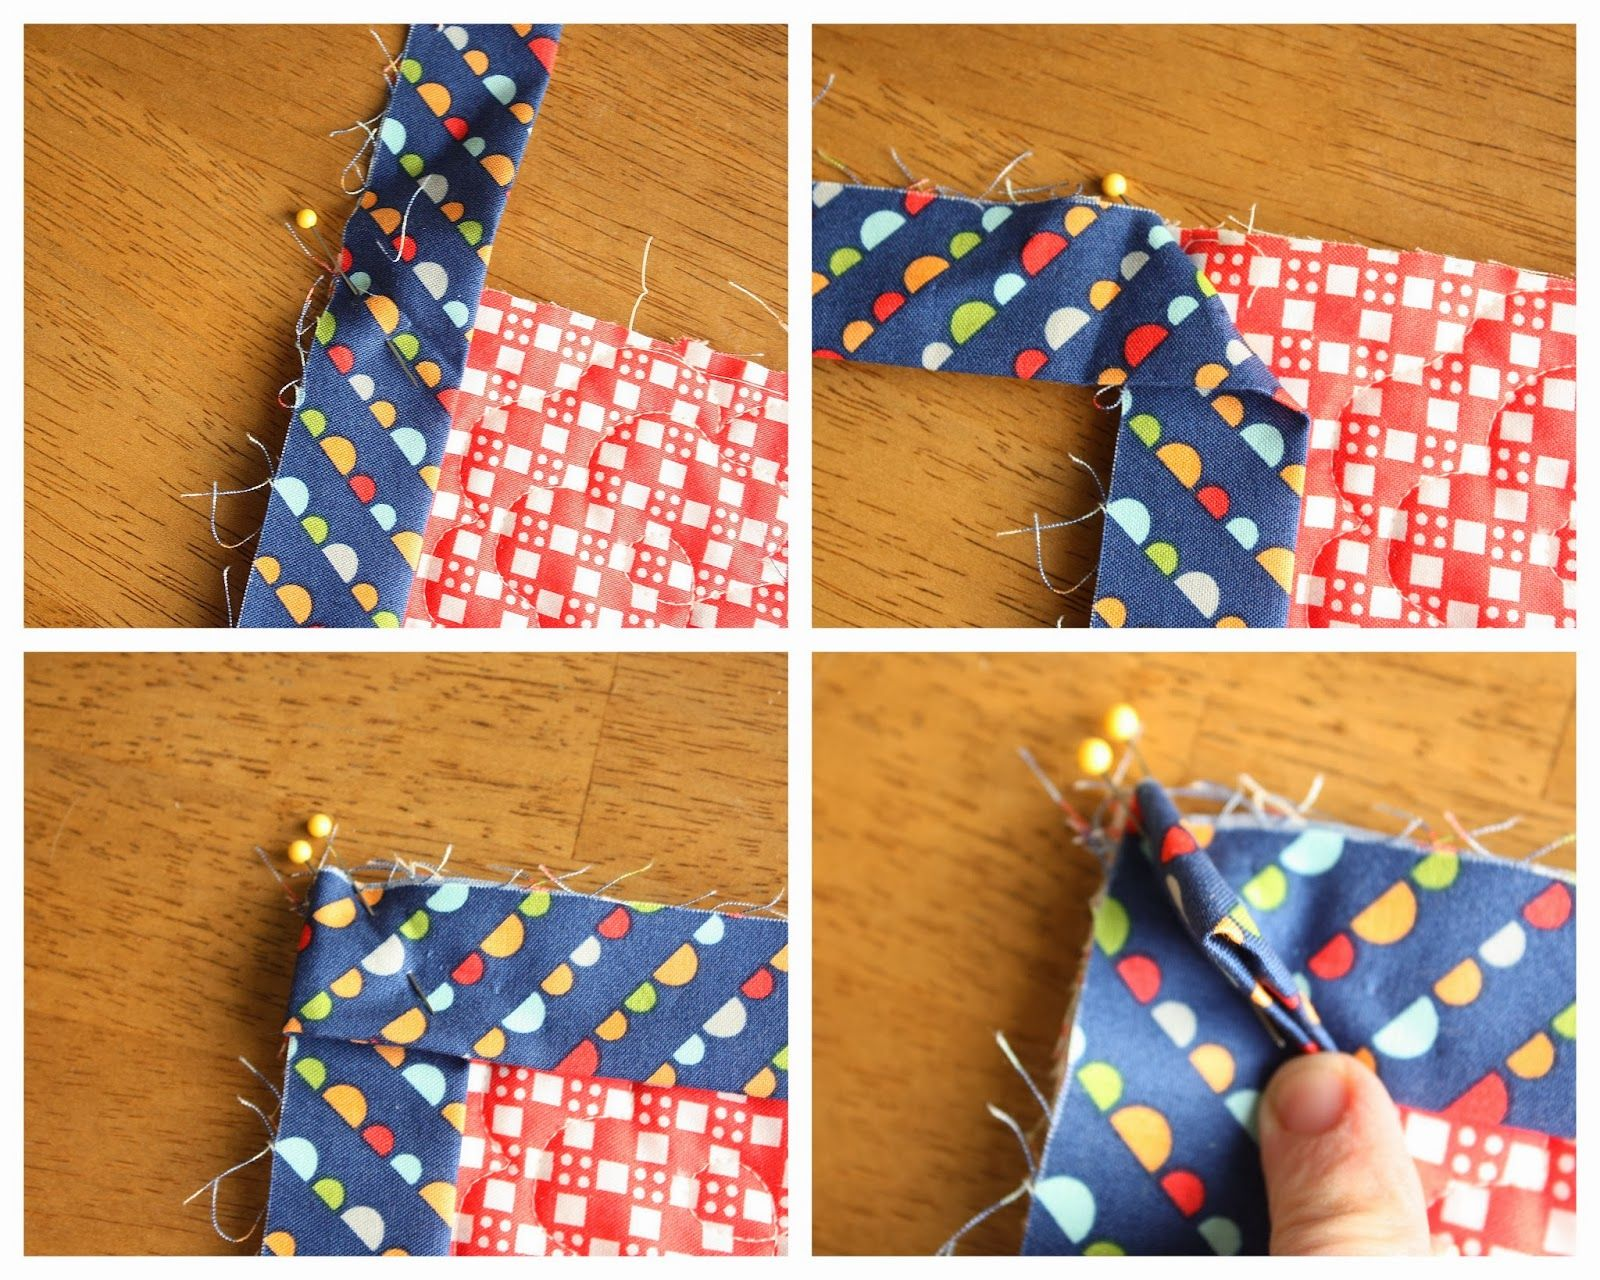 How to Finish and Bind a Quilt | DIY tutorial, Tutorials and Easy : how to bind a quilt video - Adamdwight.com